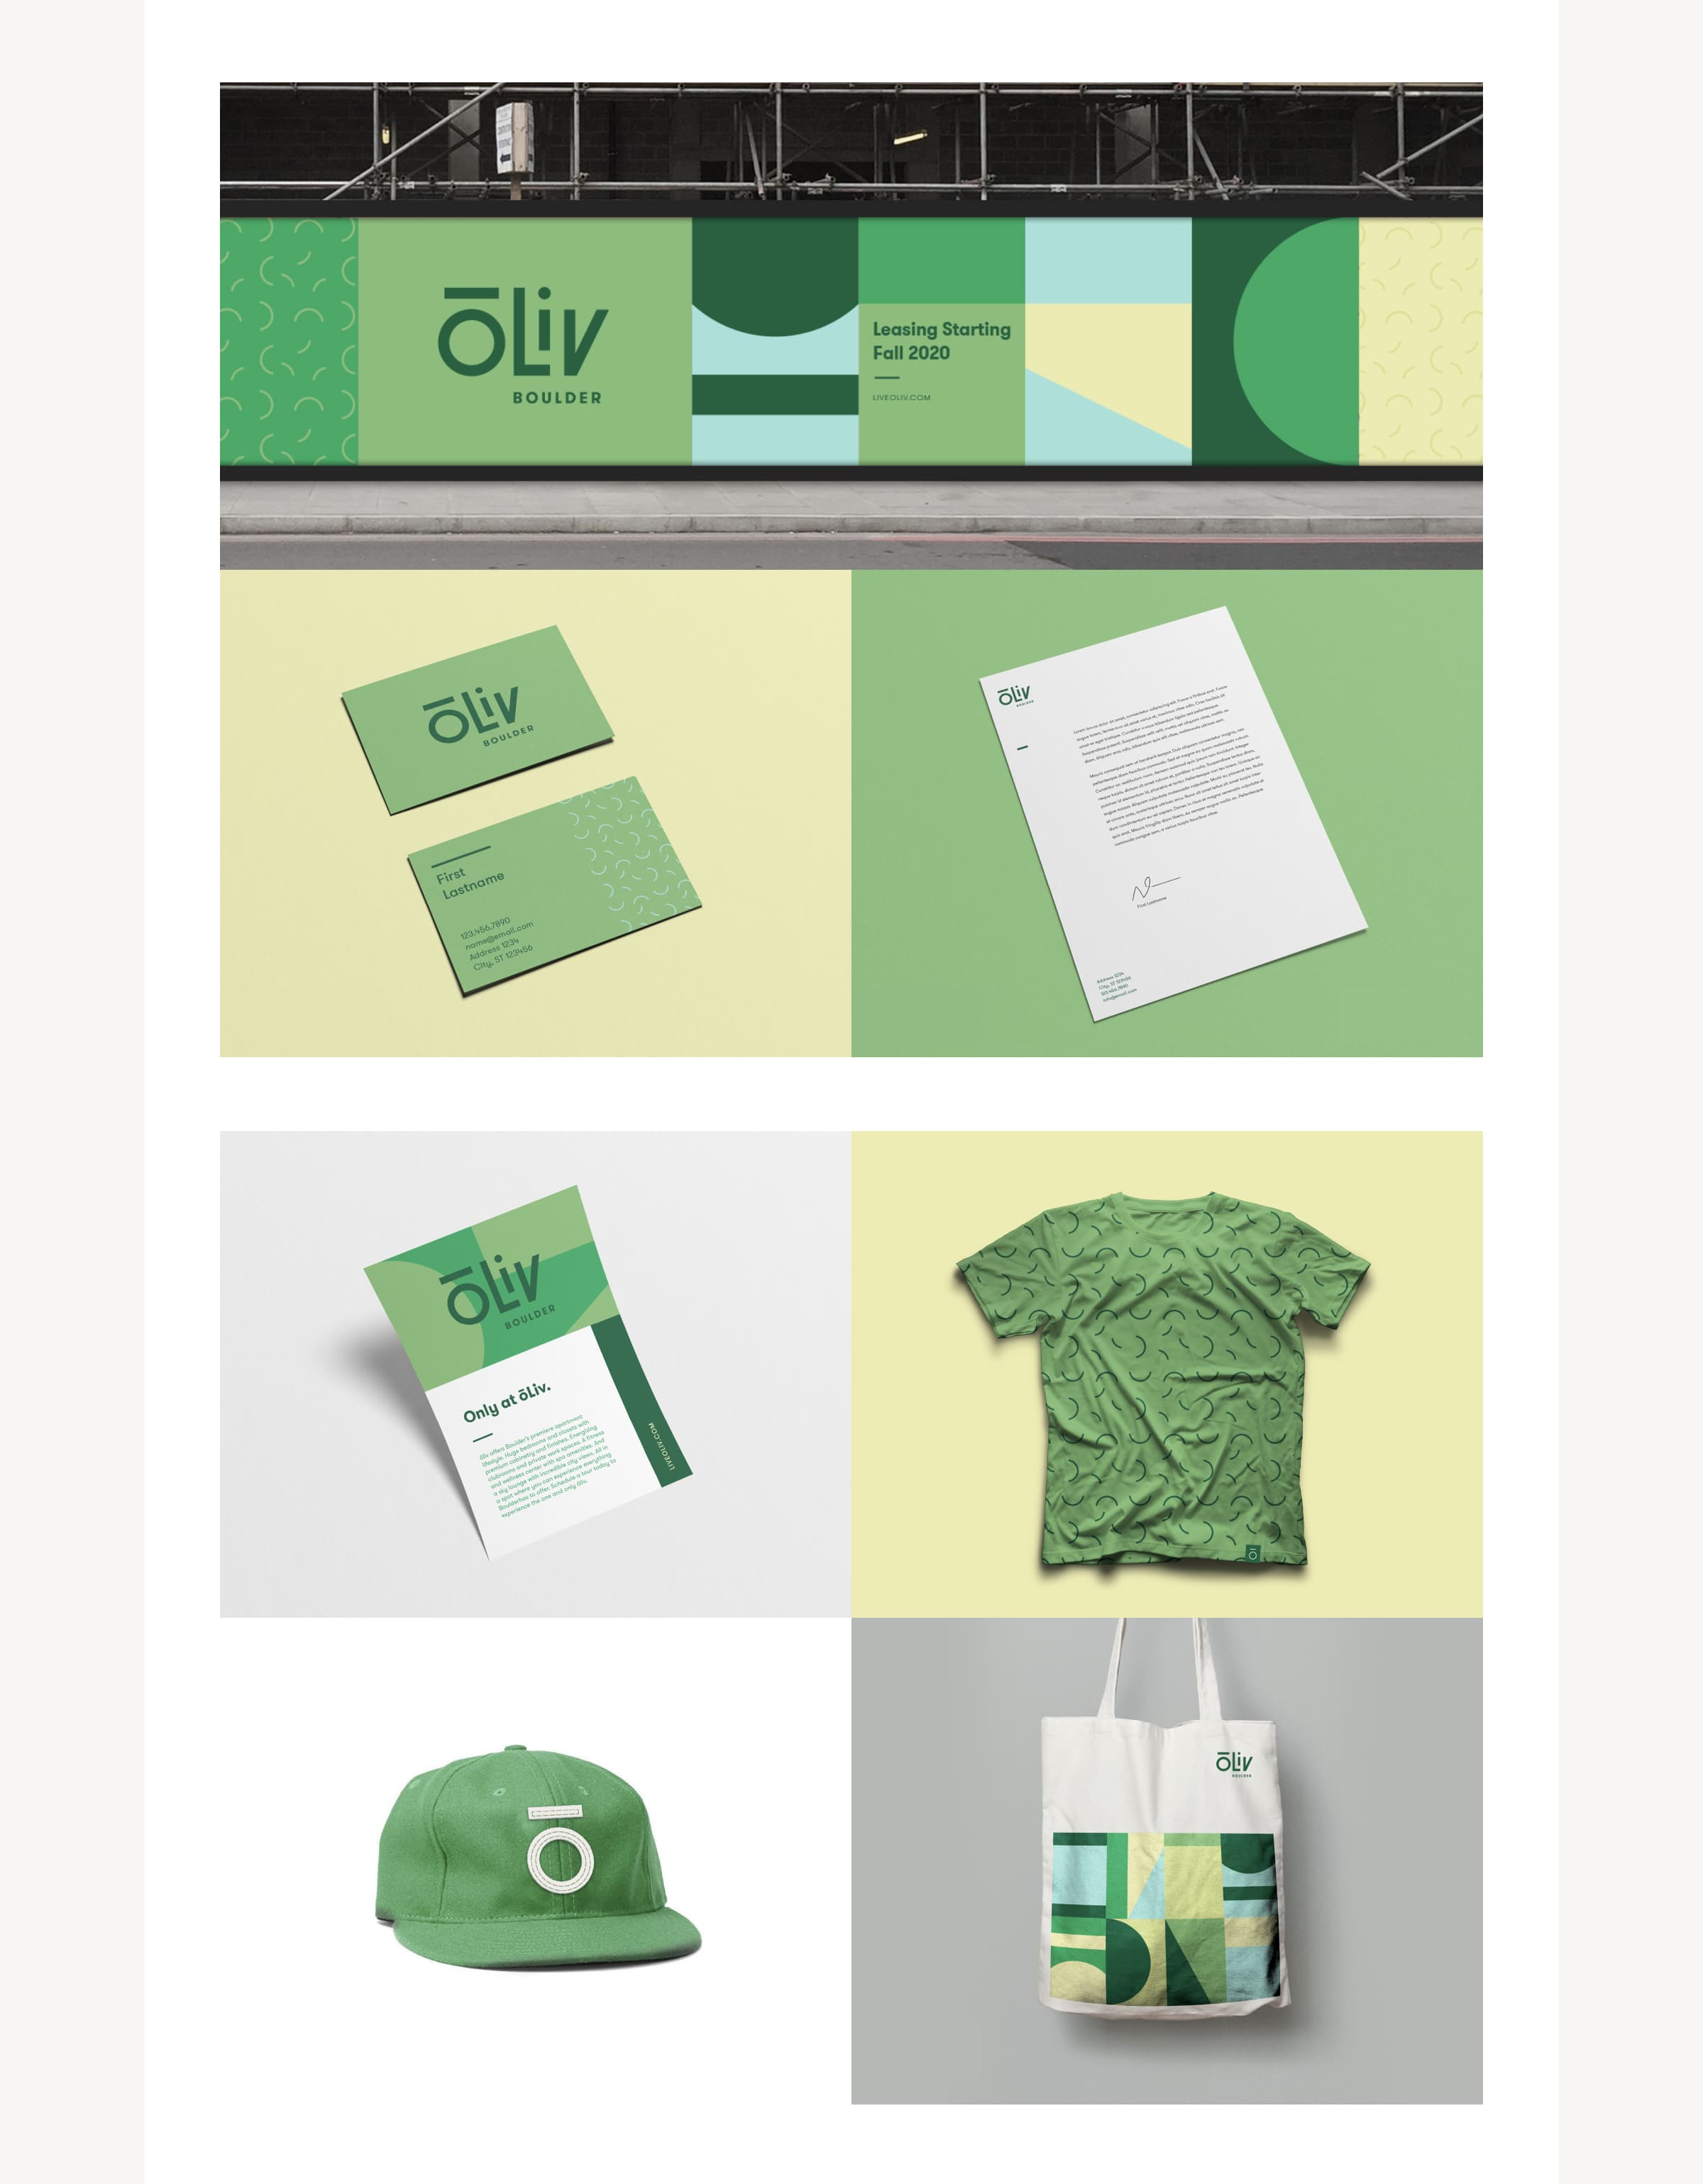 An image showing ōLiv marketing collateral for the Boulder, Colorado property, including: Building wrap signage, business card, letterhead, postcard, t-shirt, baseball hat, and tote bag.